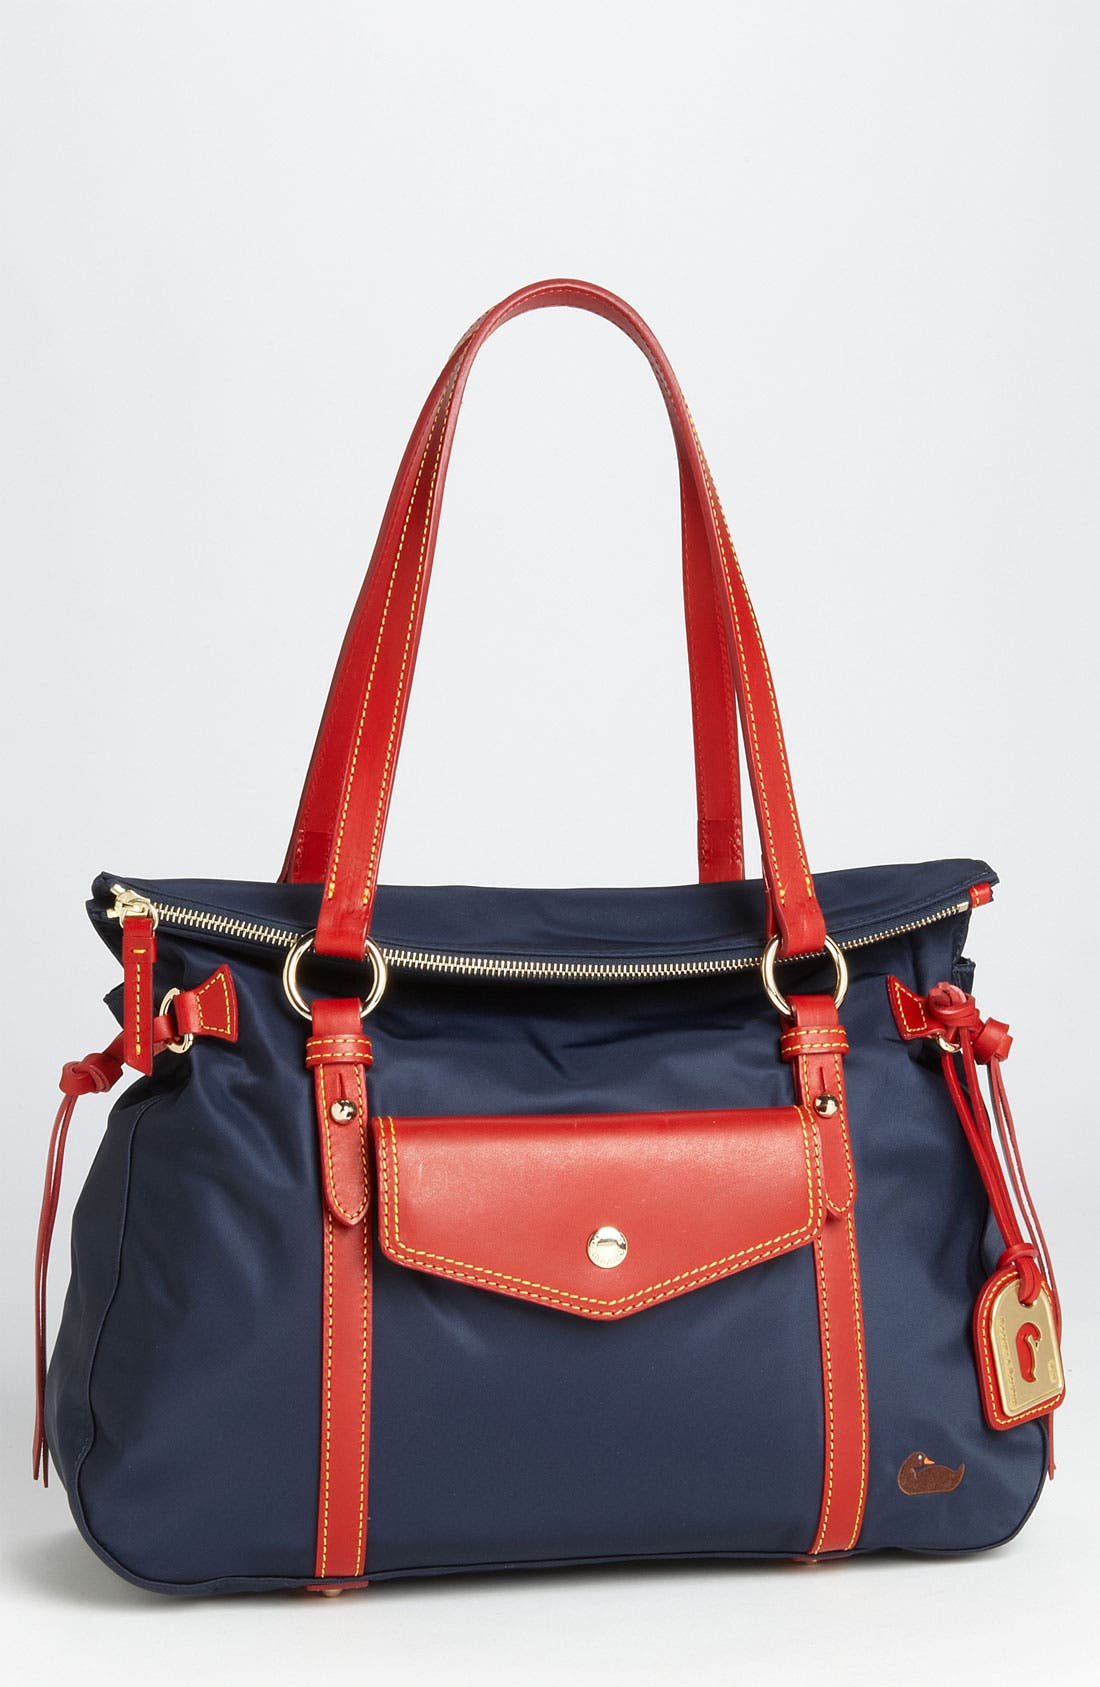 Alternate Image 1 Selected - Dooney & Bourke 'The Smith' Shopper